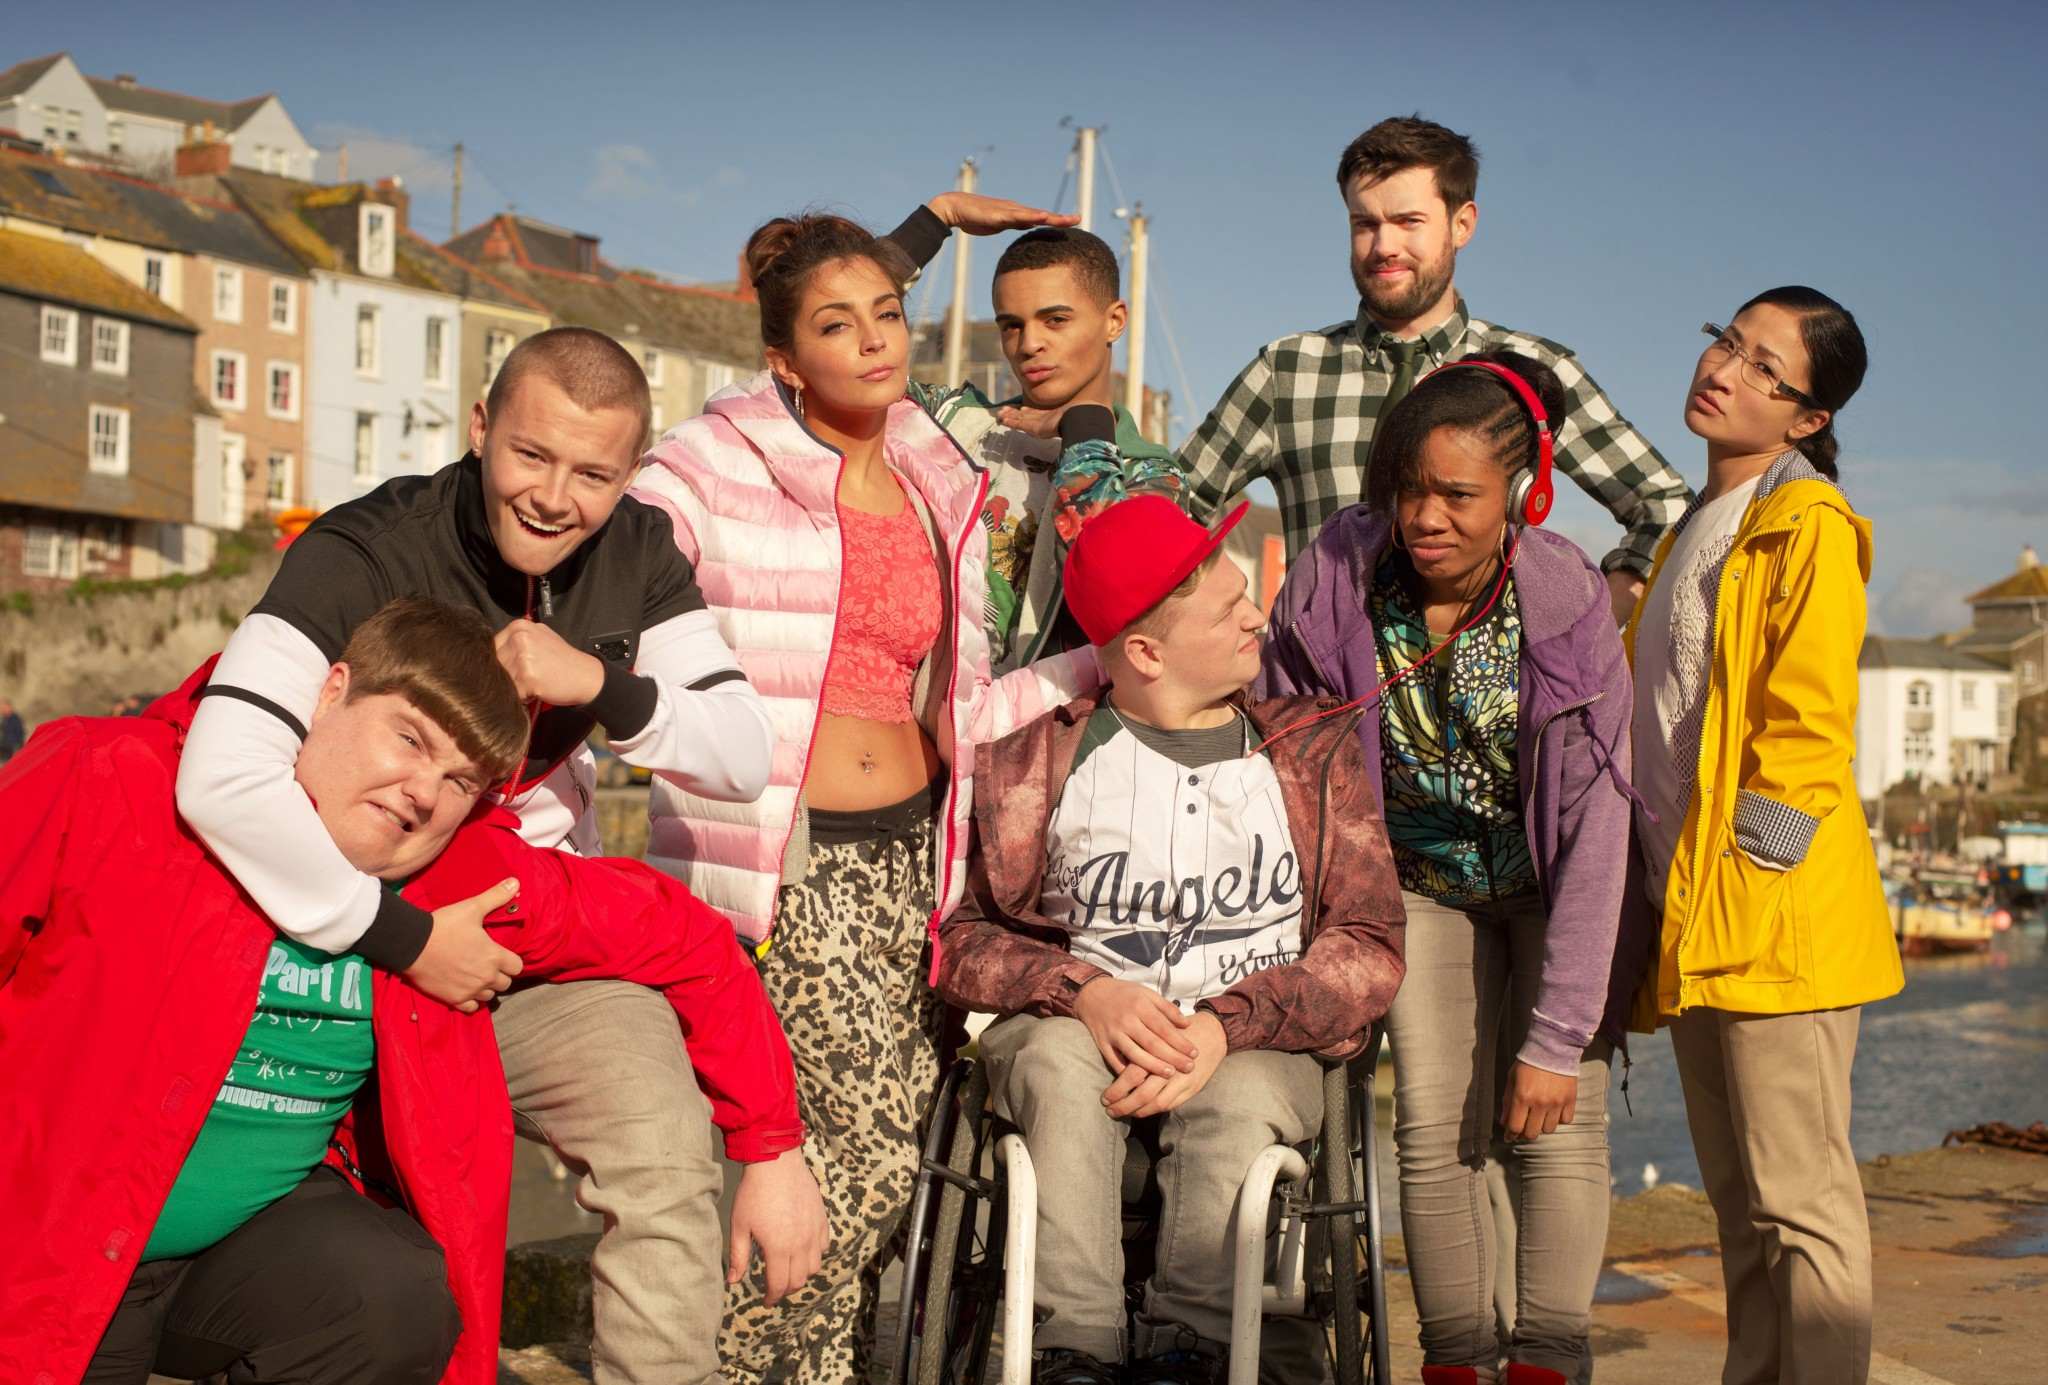 The-Bad-Education-Movie-first-look-image